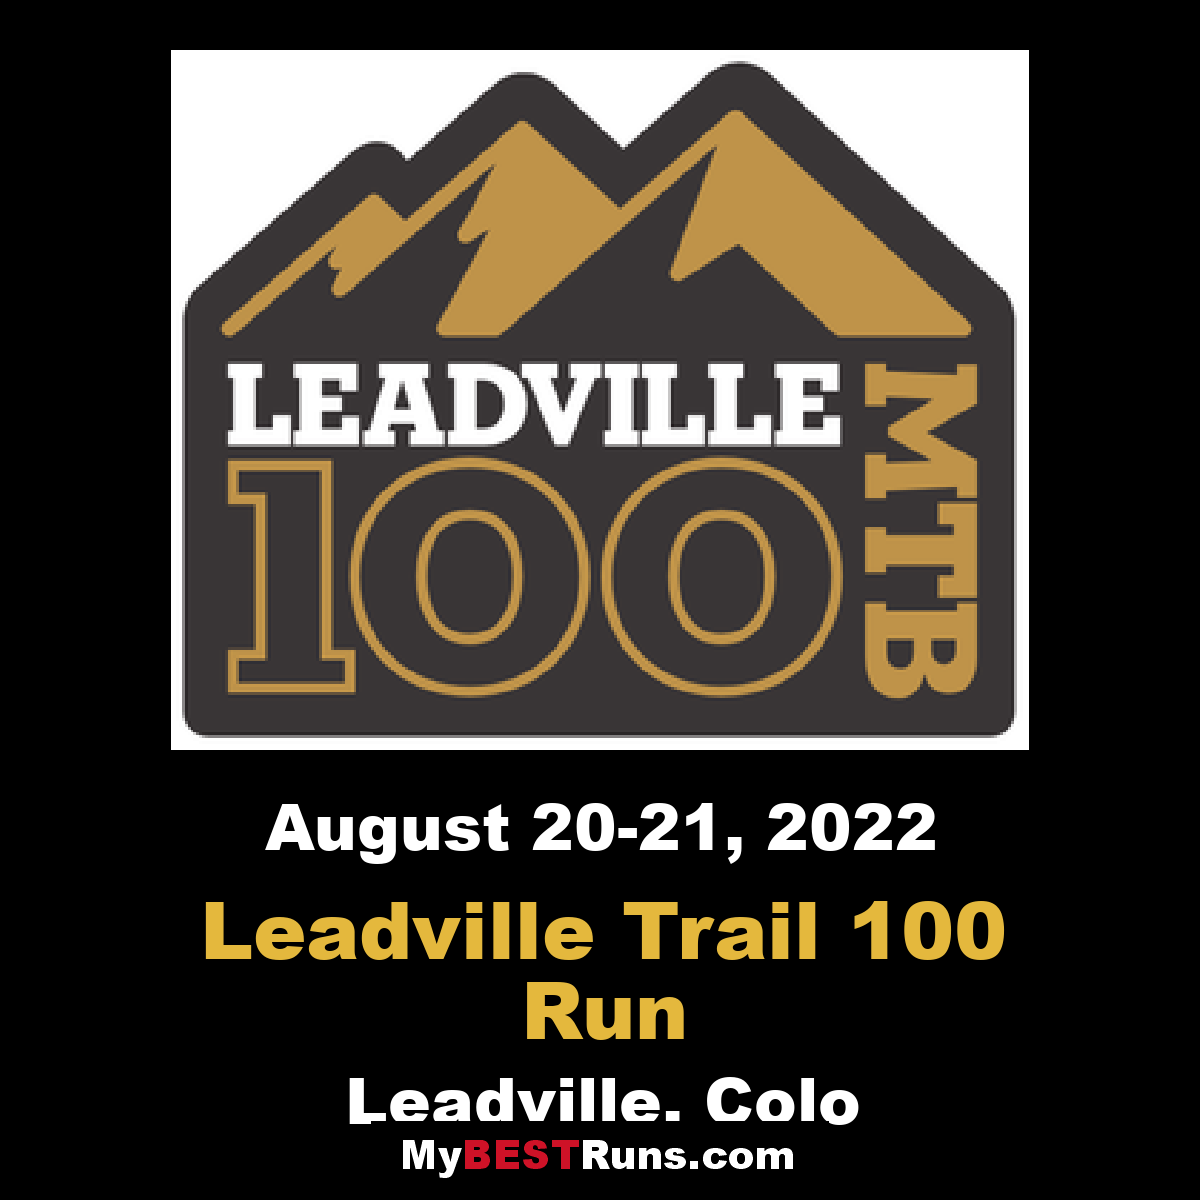 Leadville Trail 100 Run